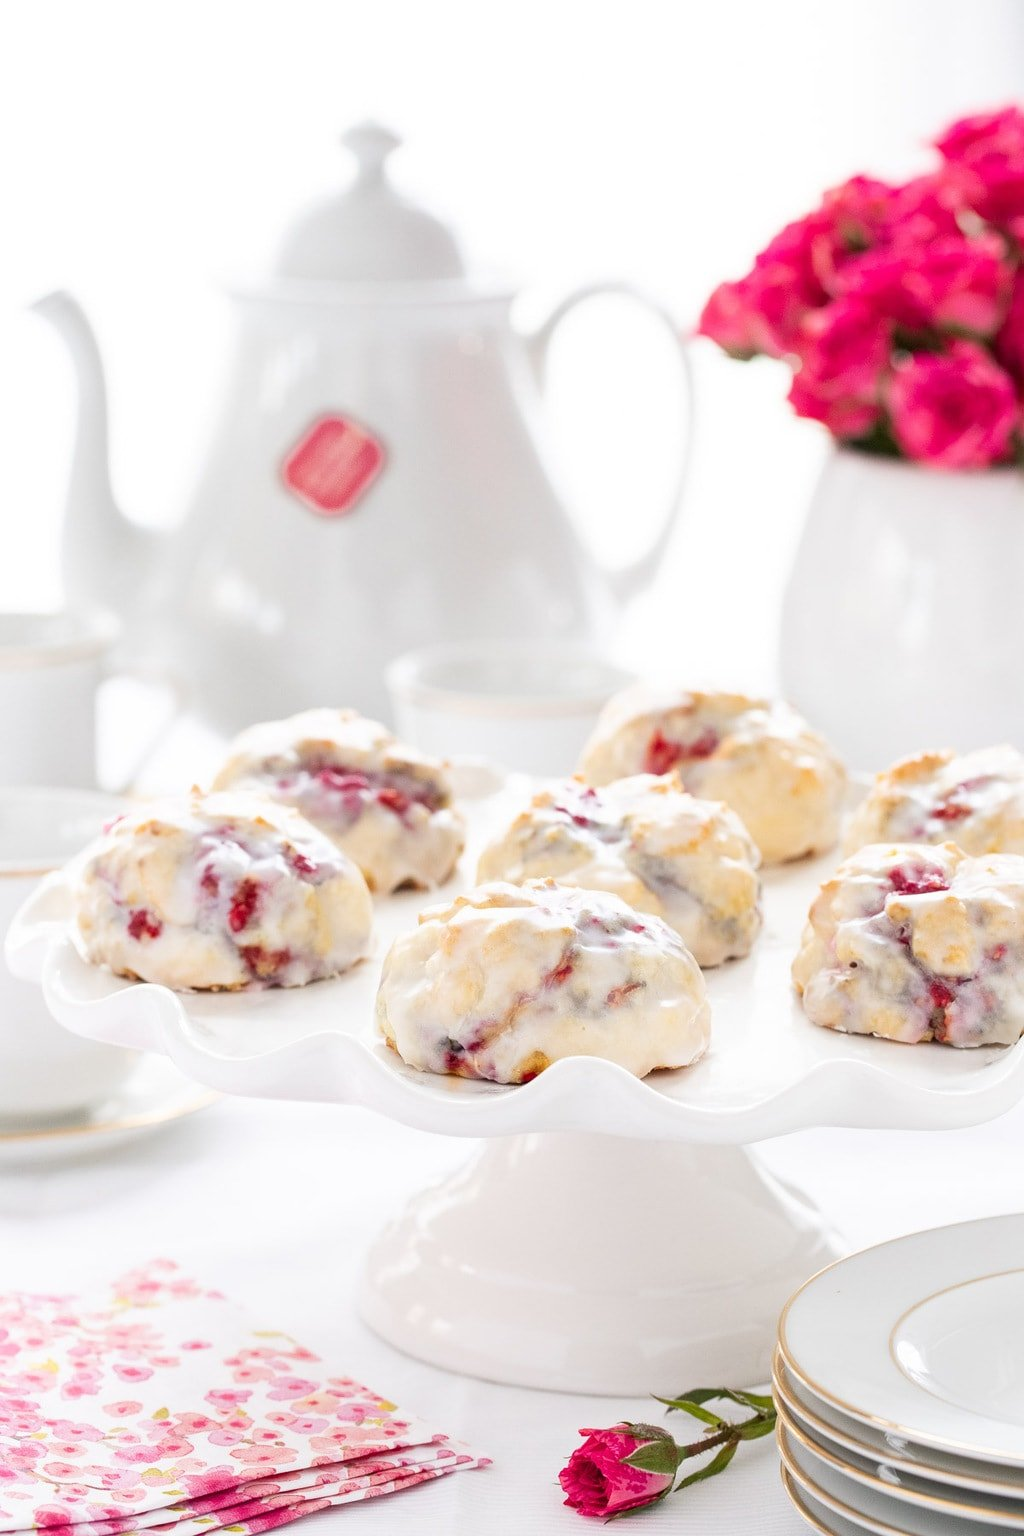 Vertical photo of a serving plate of Ridiculously Easy Lemon Raspberry Scones with a tea pot and vase of flowers in the background.